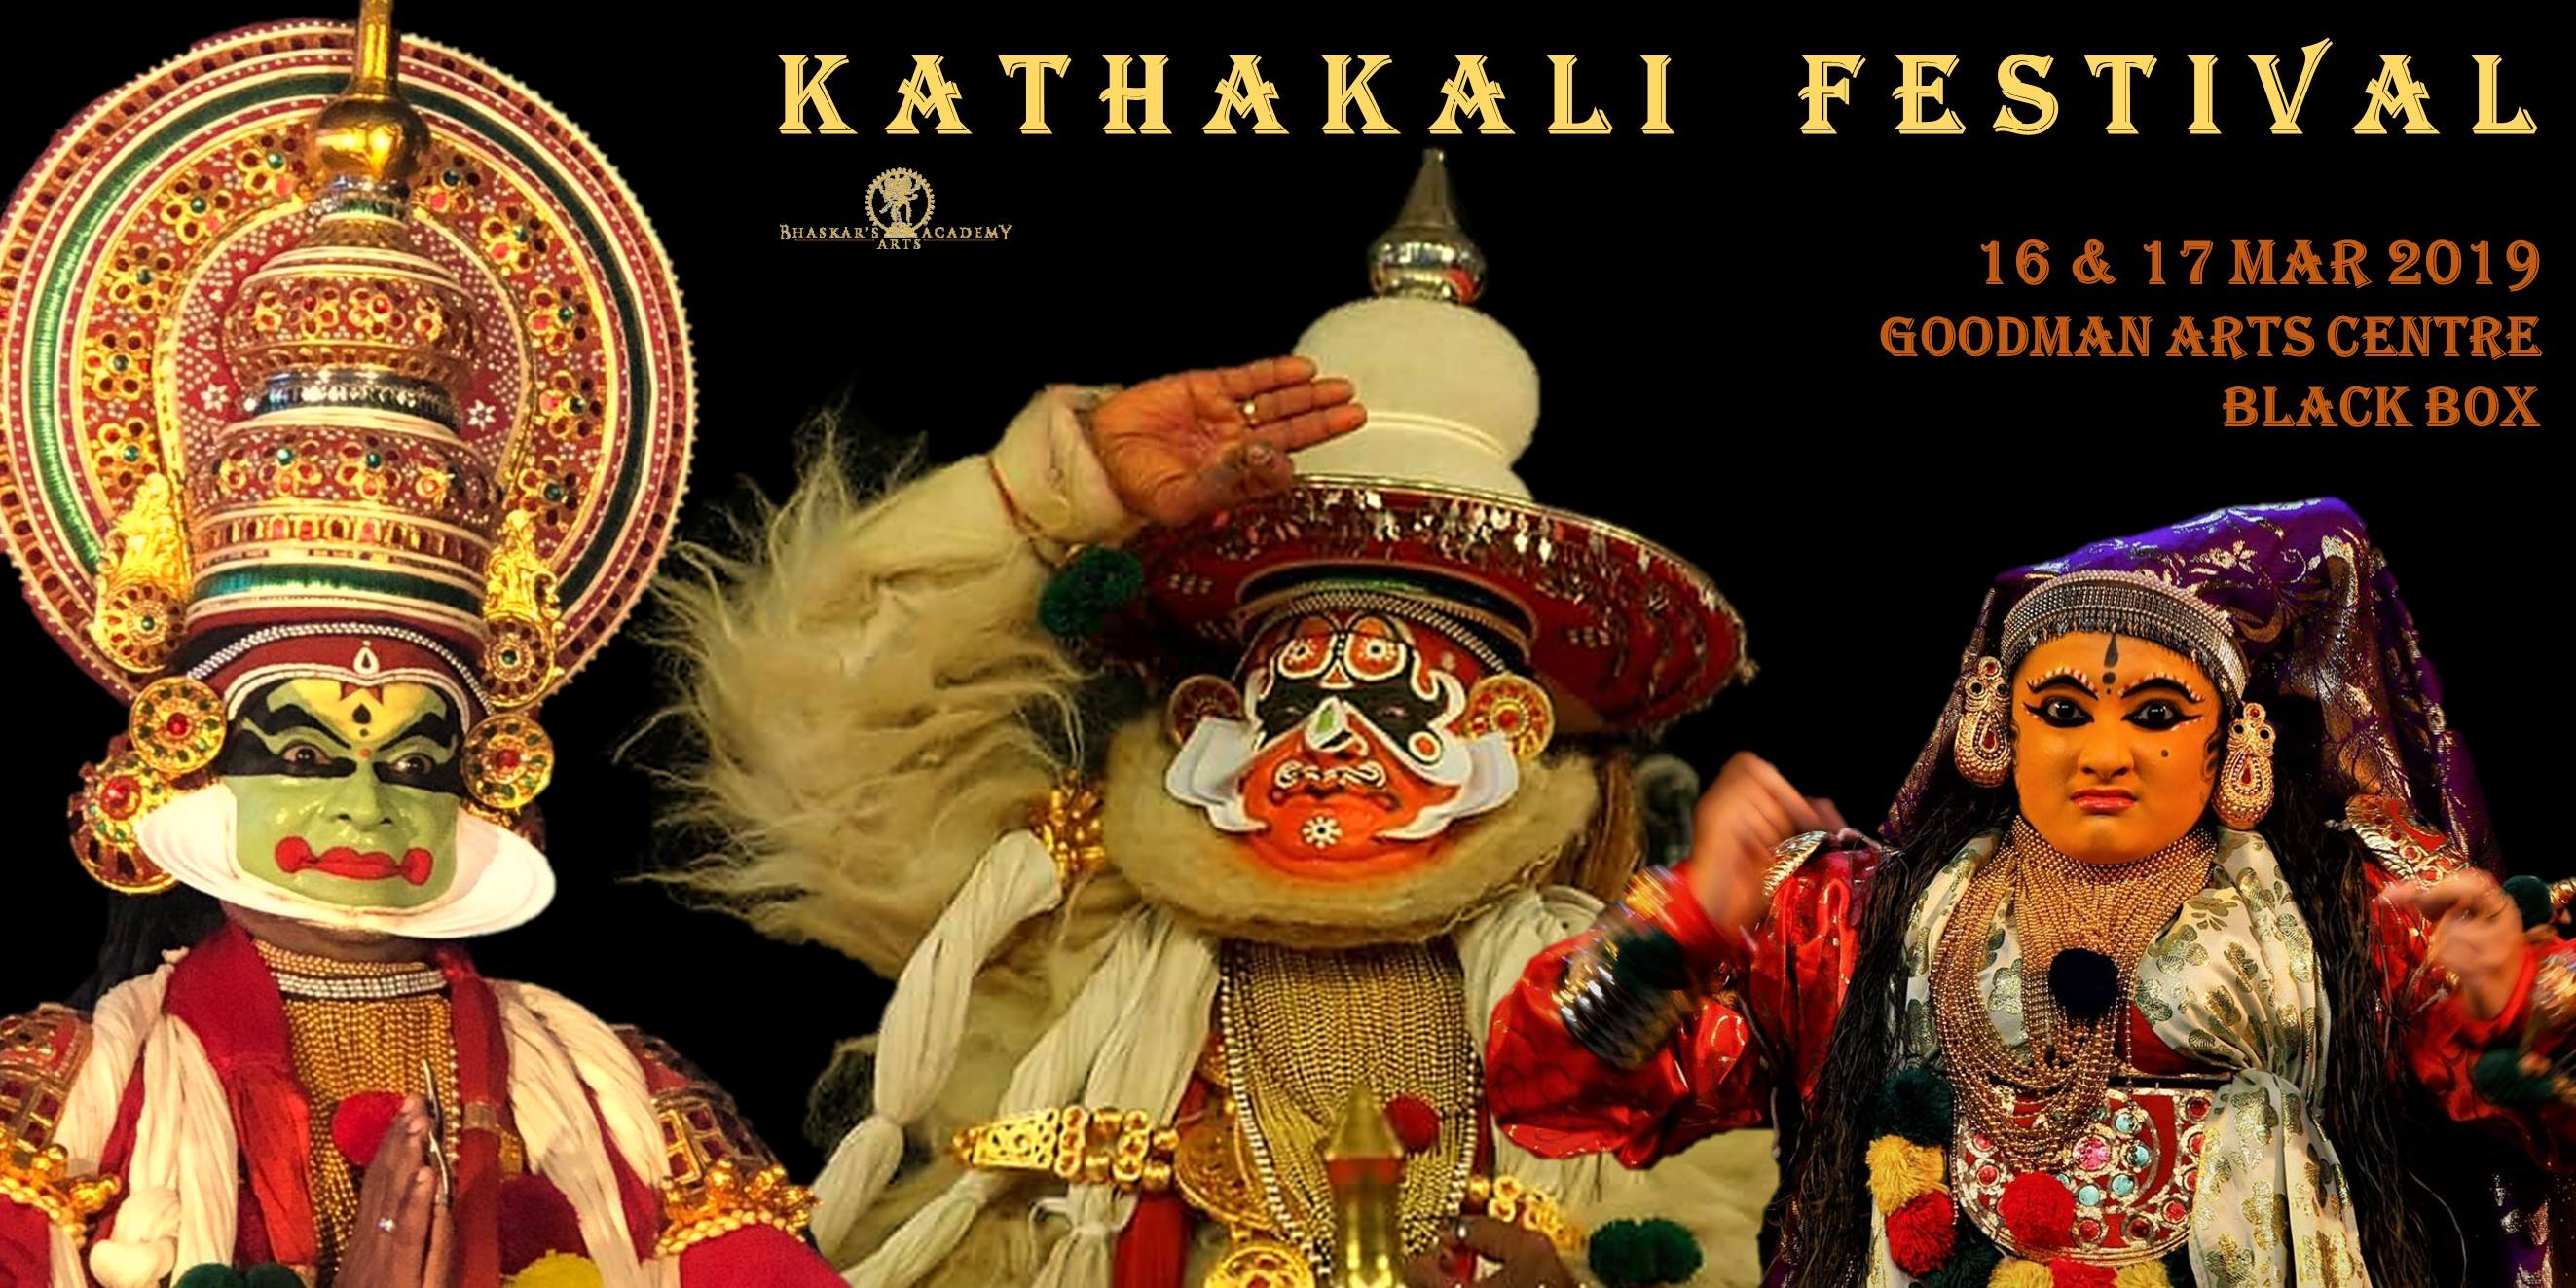 Kathakali Festival. Photo courtesy: Bhaskar's Arts Academy